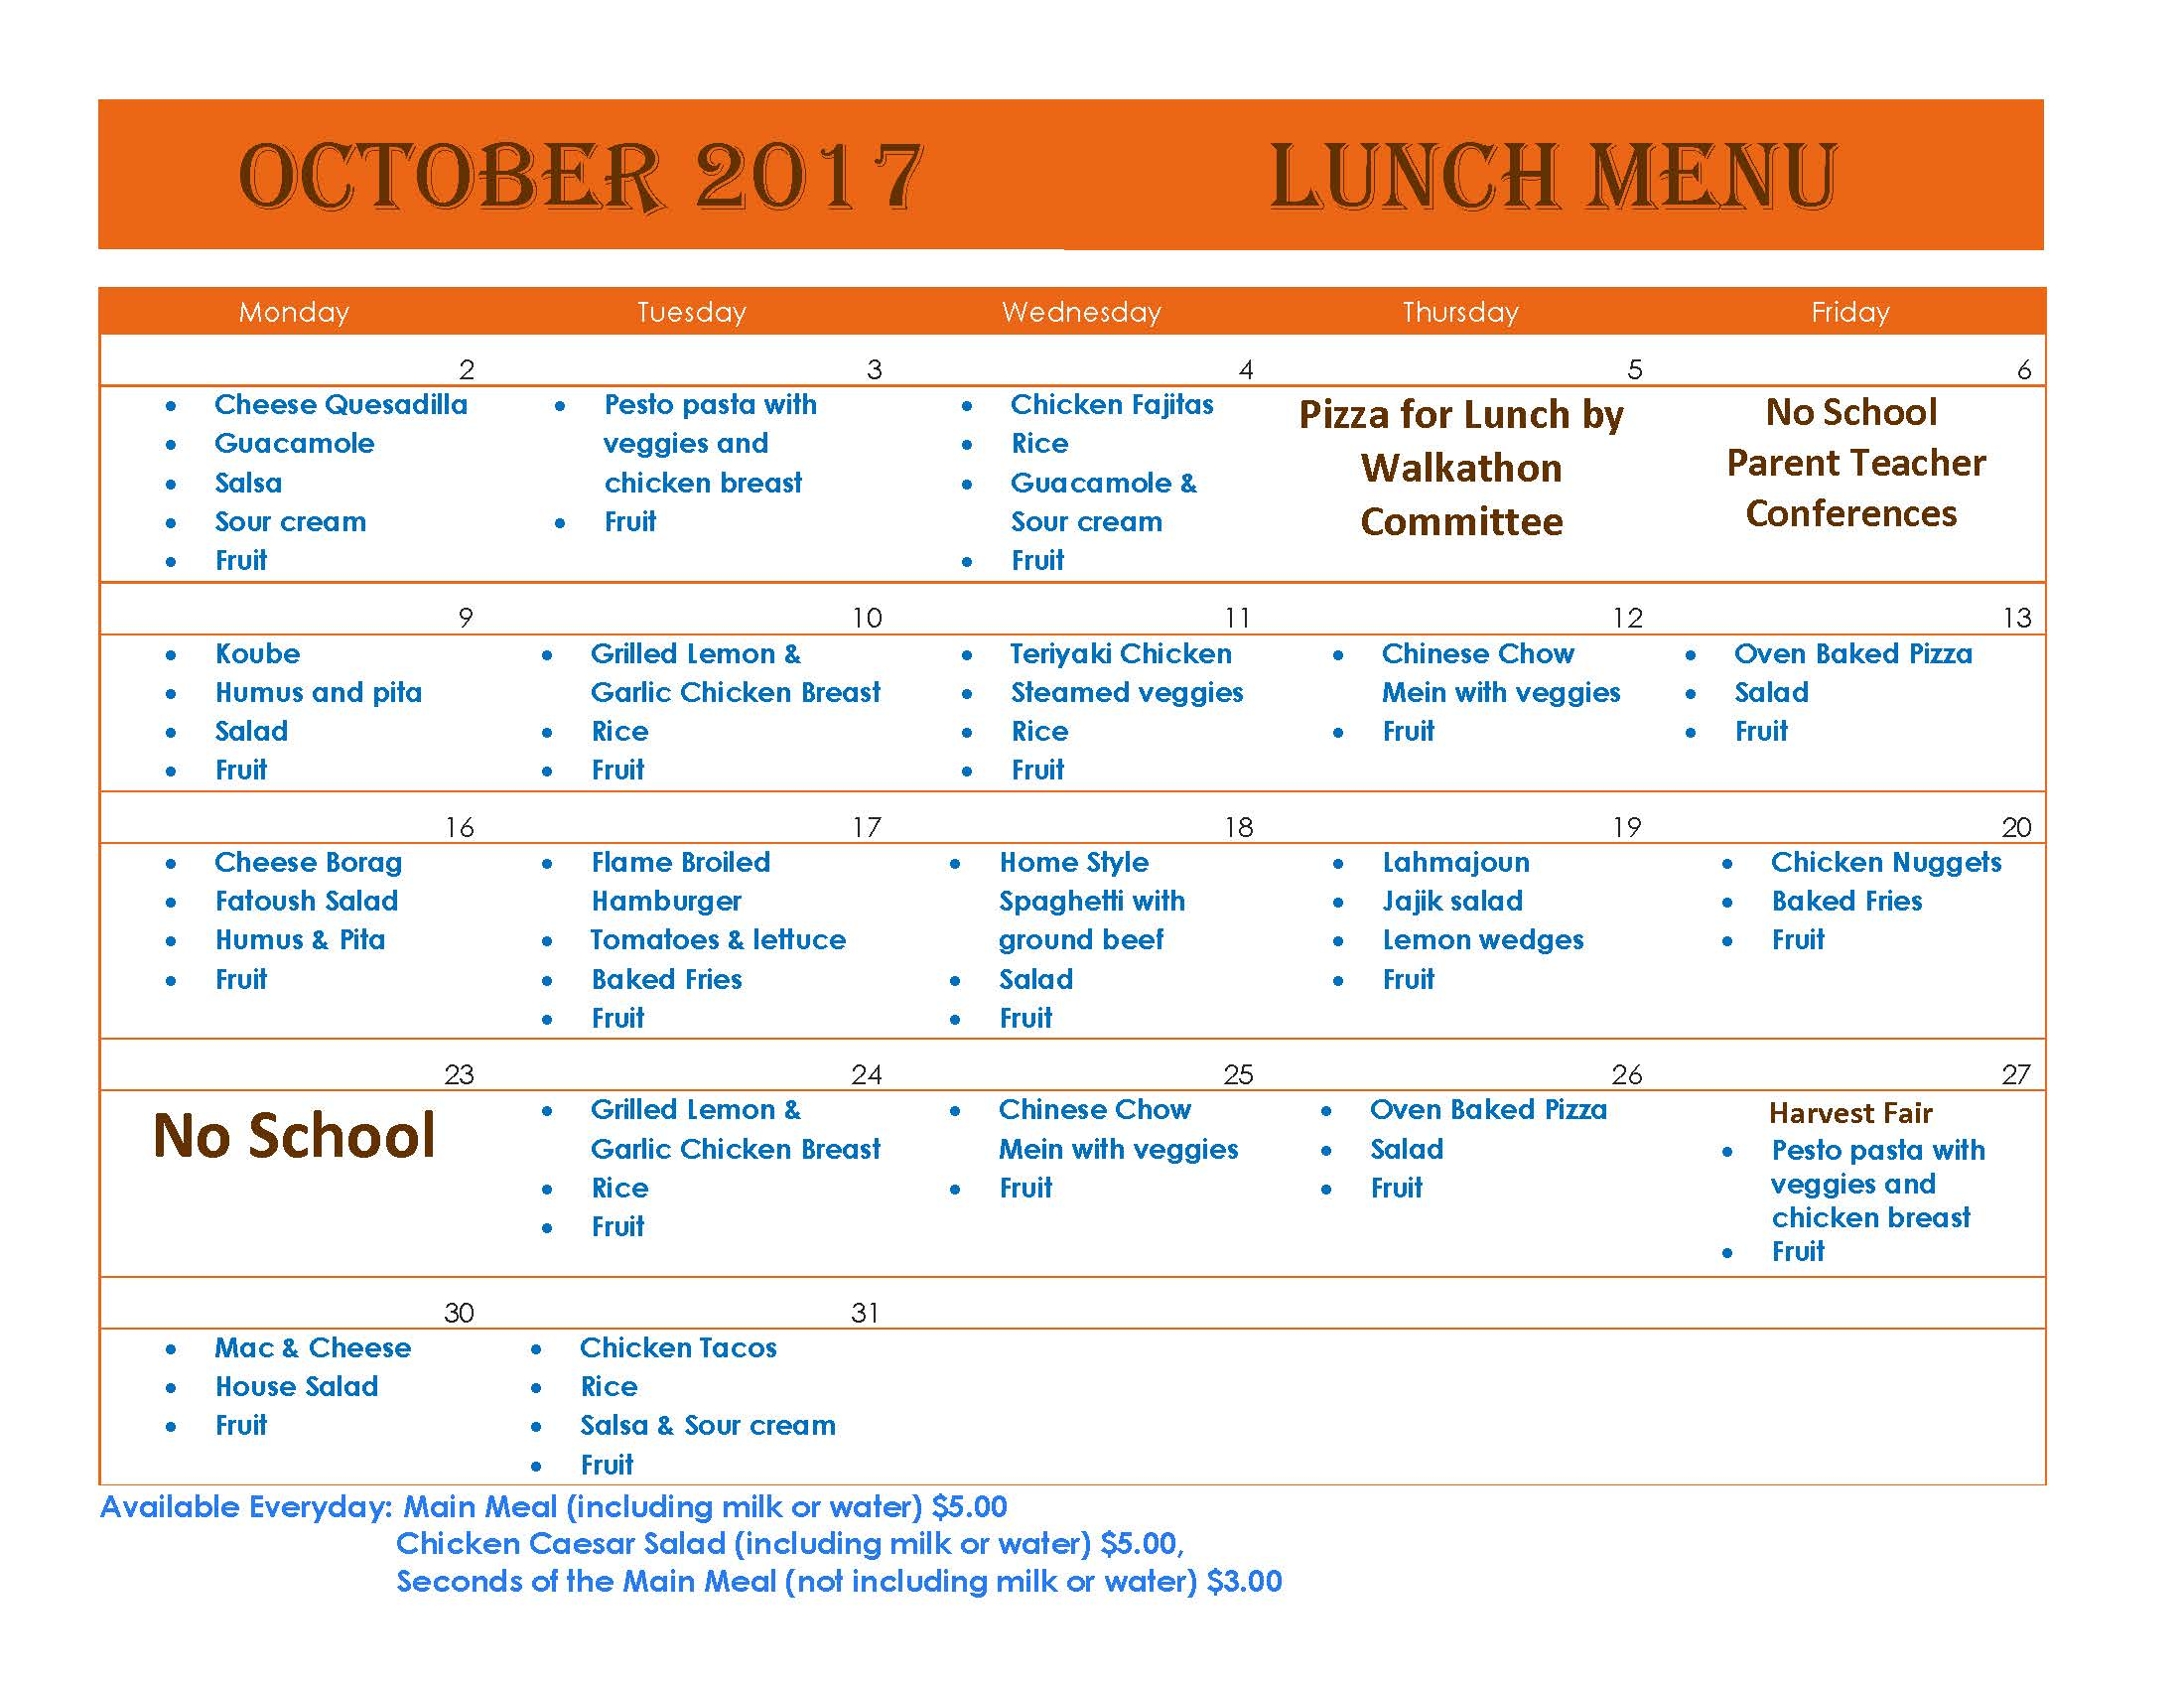 October_2017_Lunch_menu.jpg